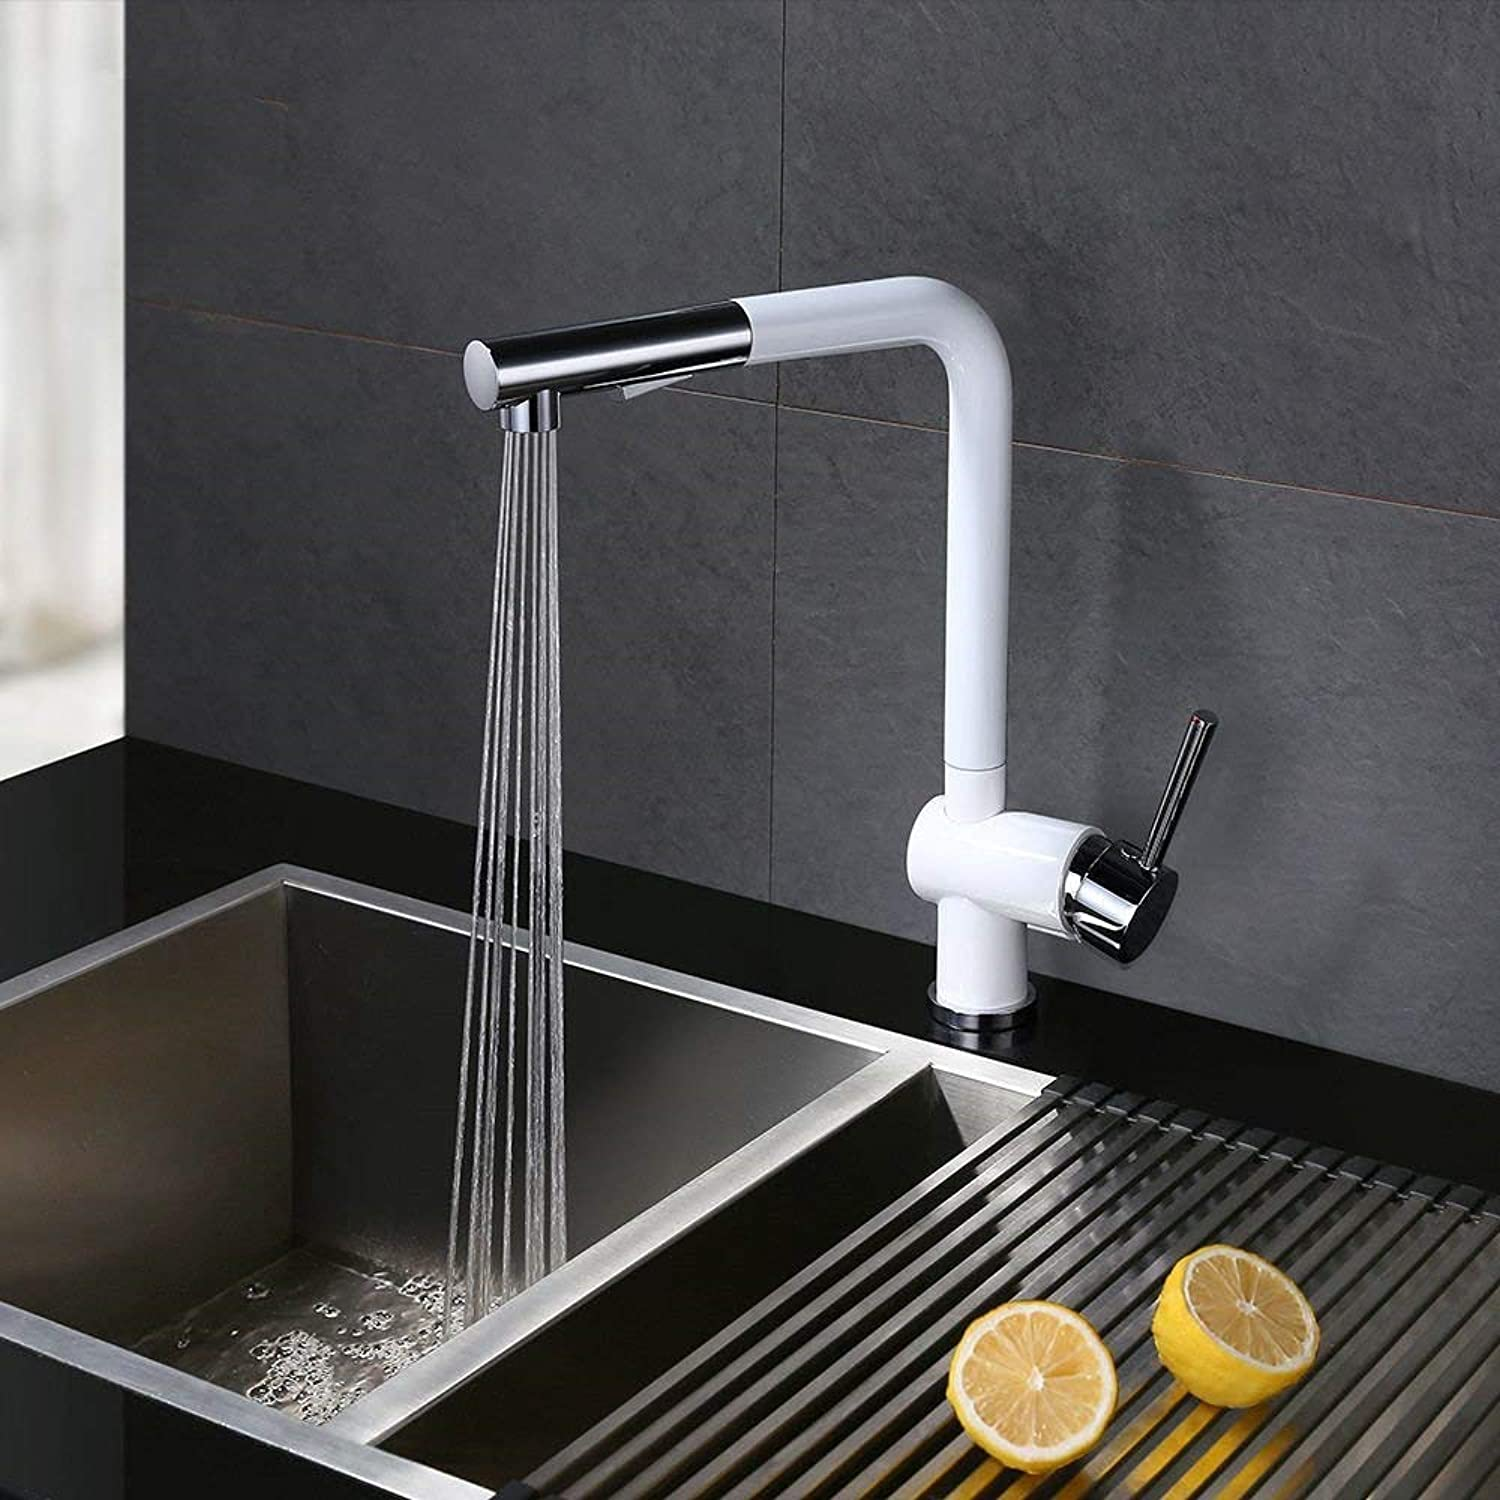 FERZA home Sink Mixer Tap Bathroom Kitchen Basin Tap Leakproof Save Water Hot And Cold Water Kitchen 3 1 Brushed Sink Mixer